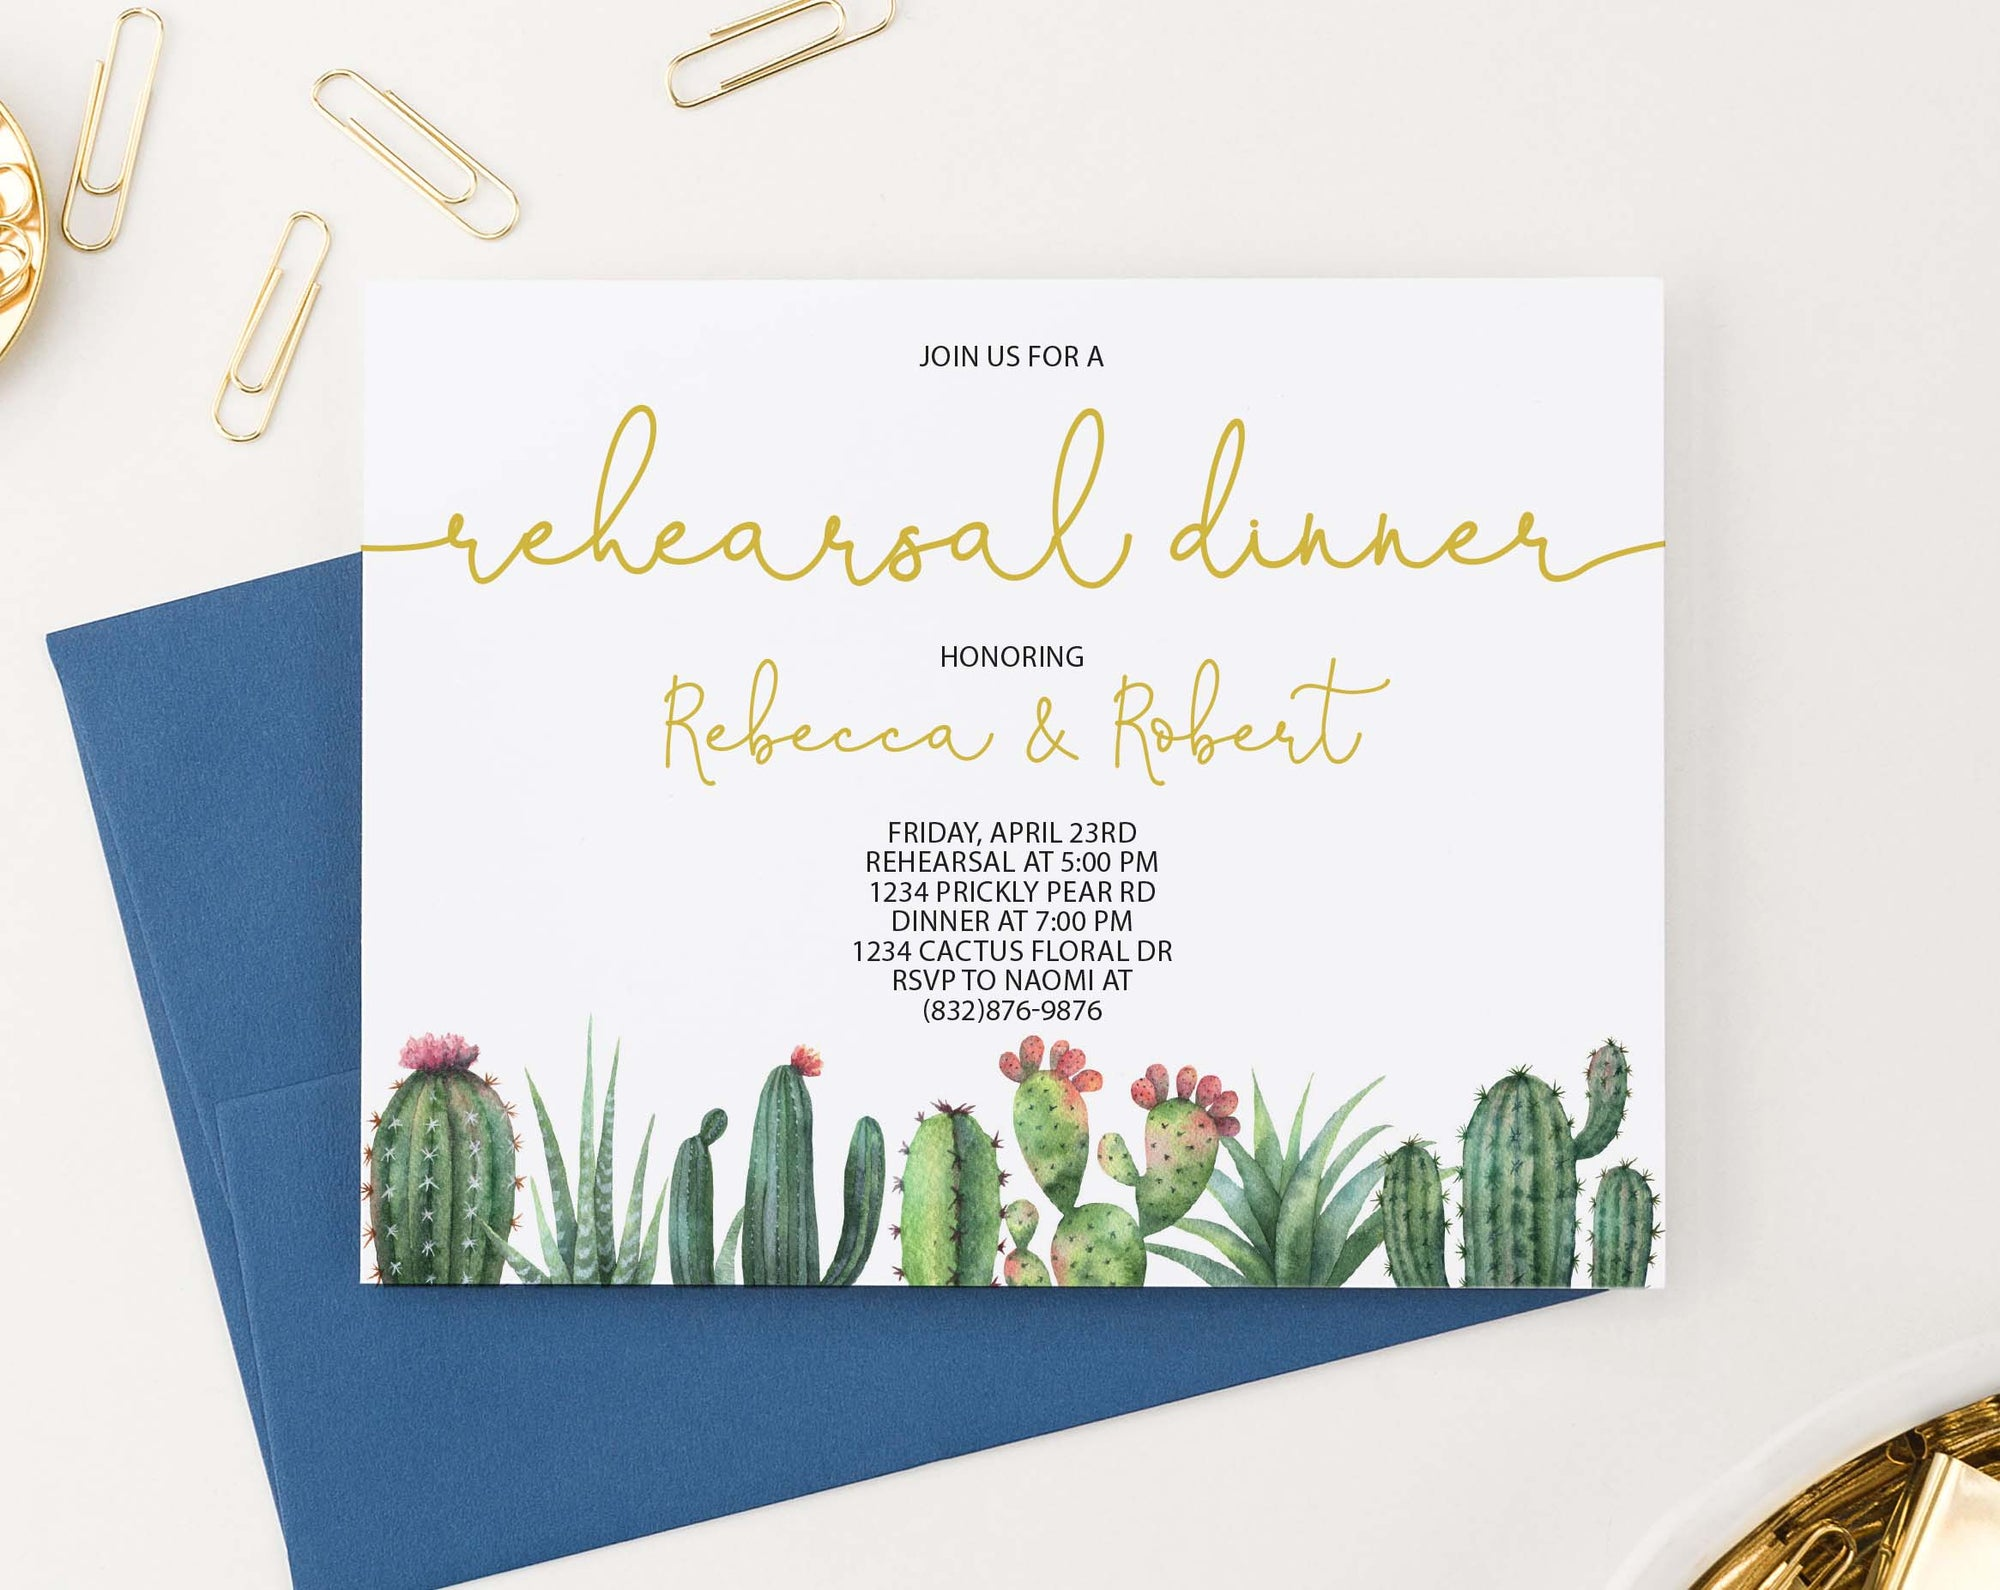 RDI019 personalized elegant rehearsal dinner invites with cactus succulents greenery